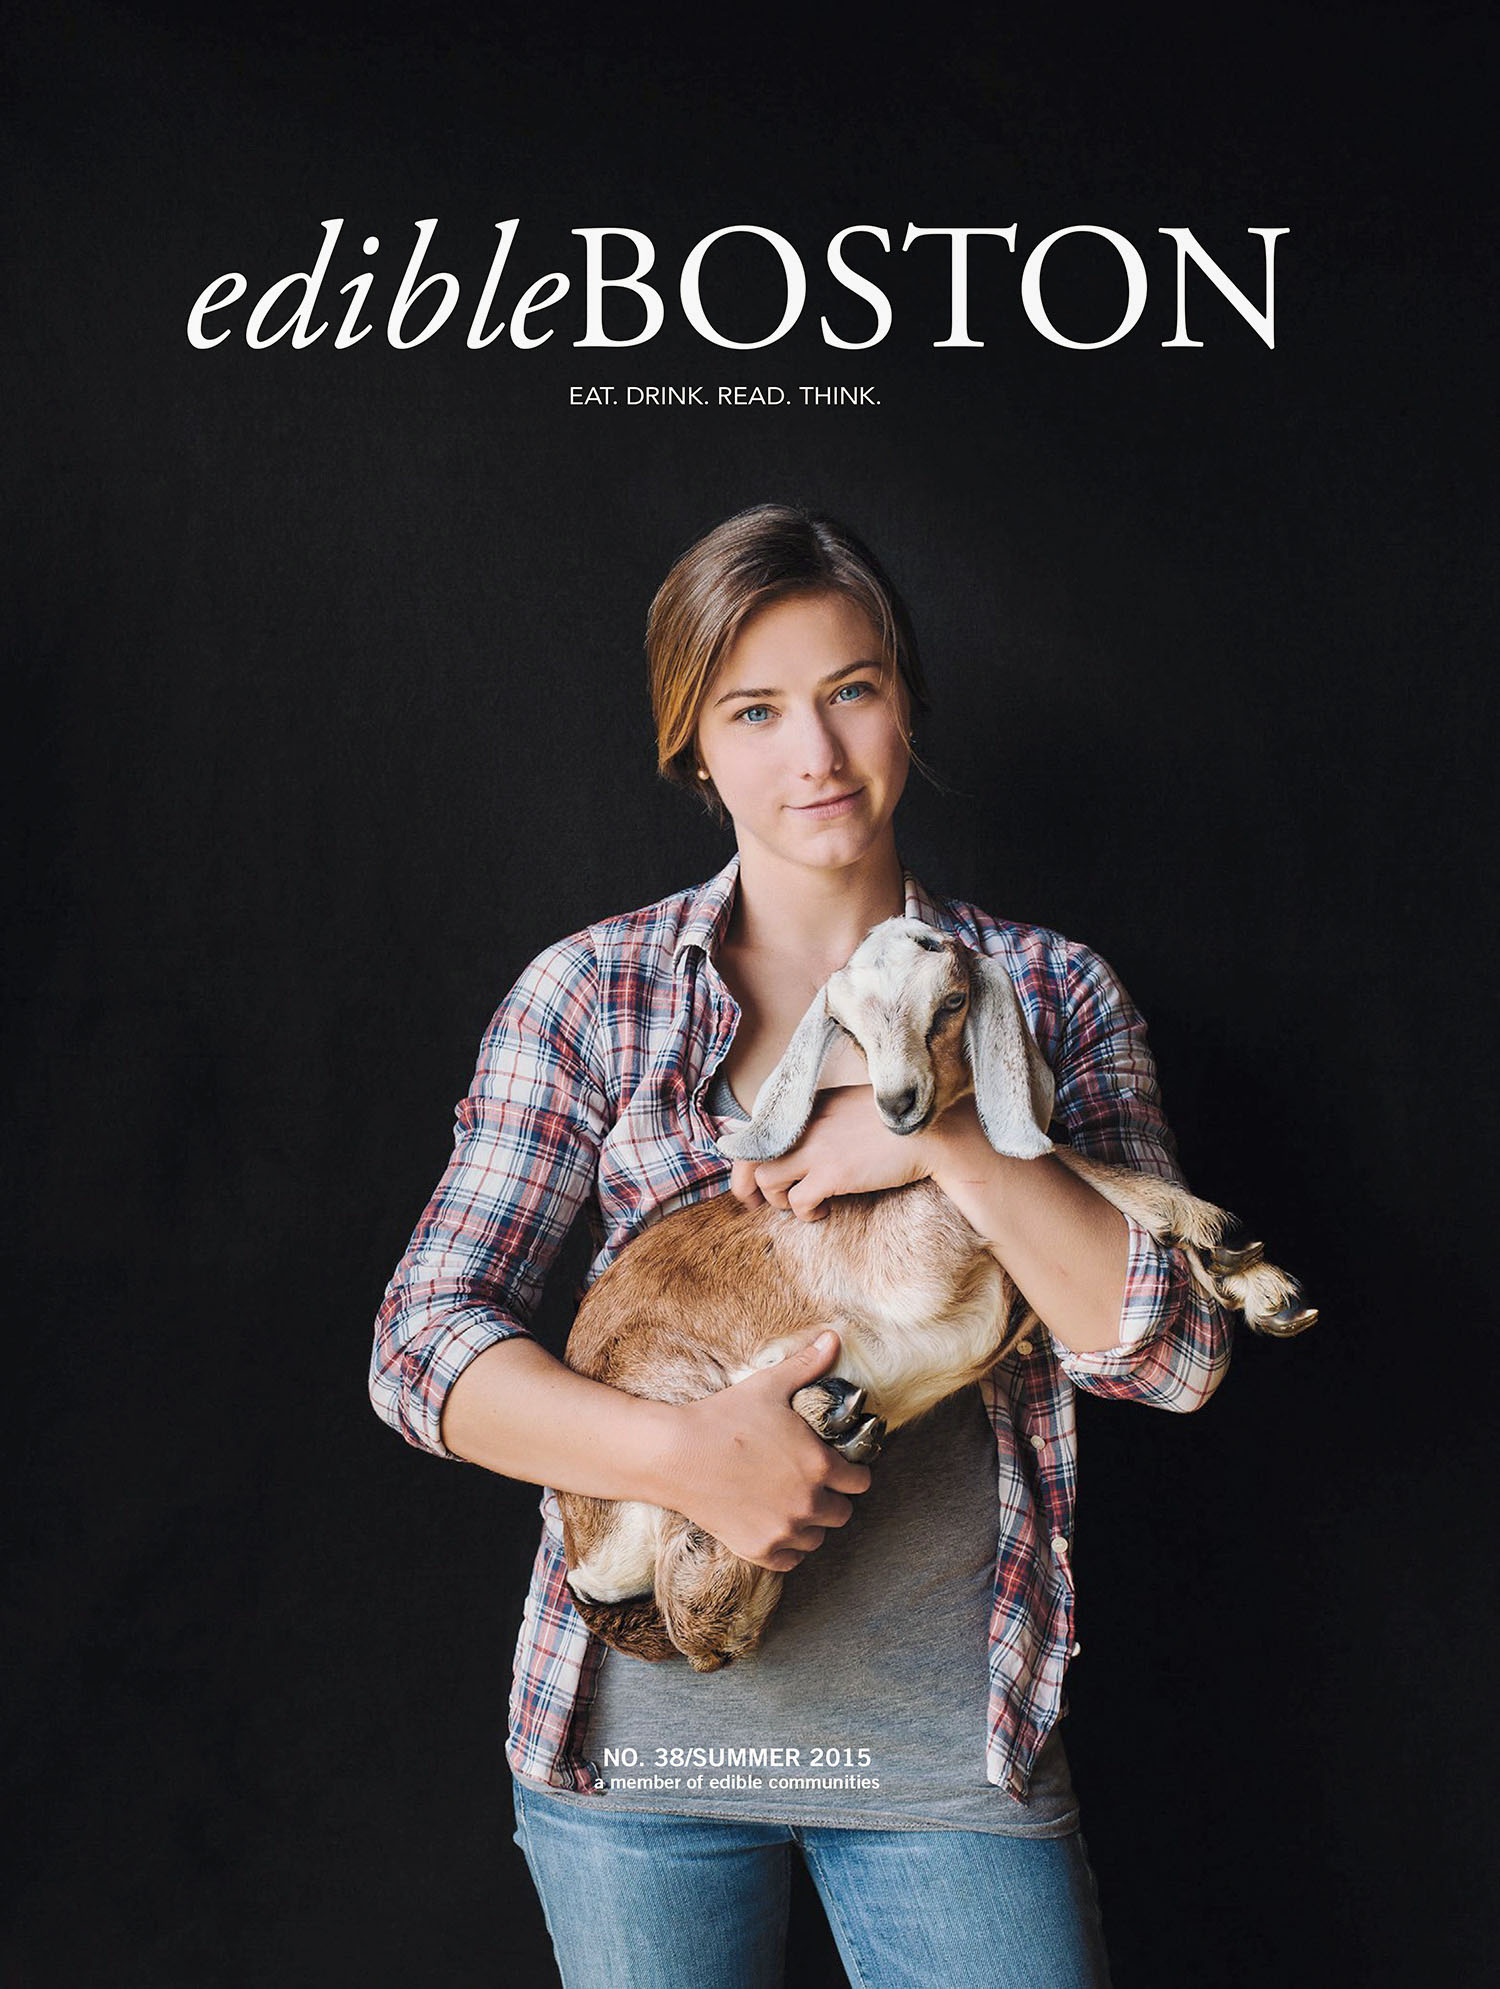 Photographs made for Edible Boston Summer 2015 Issue.